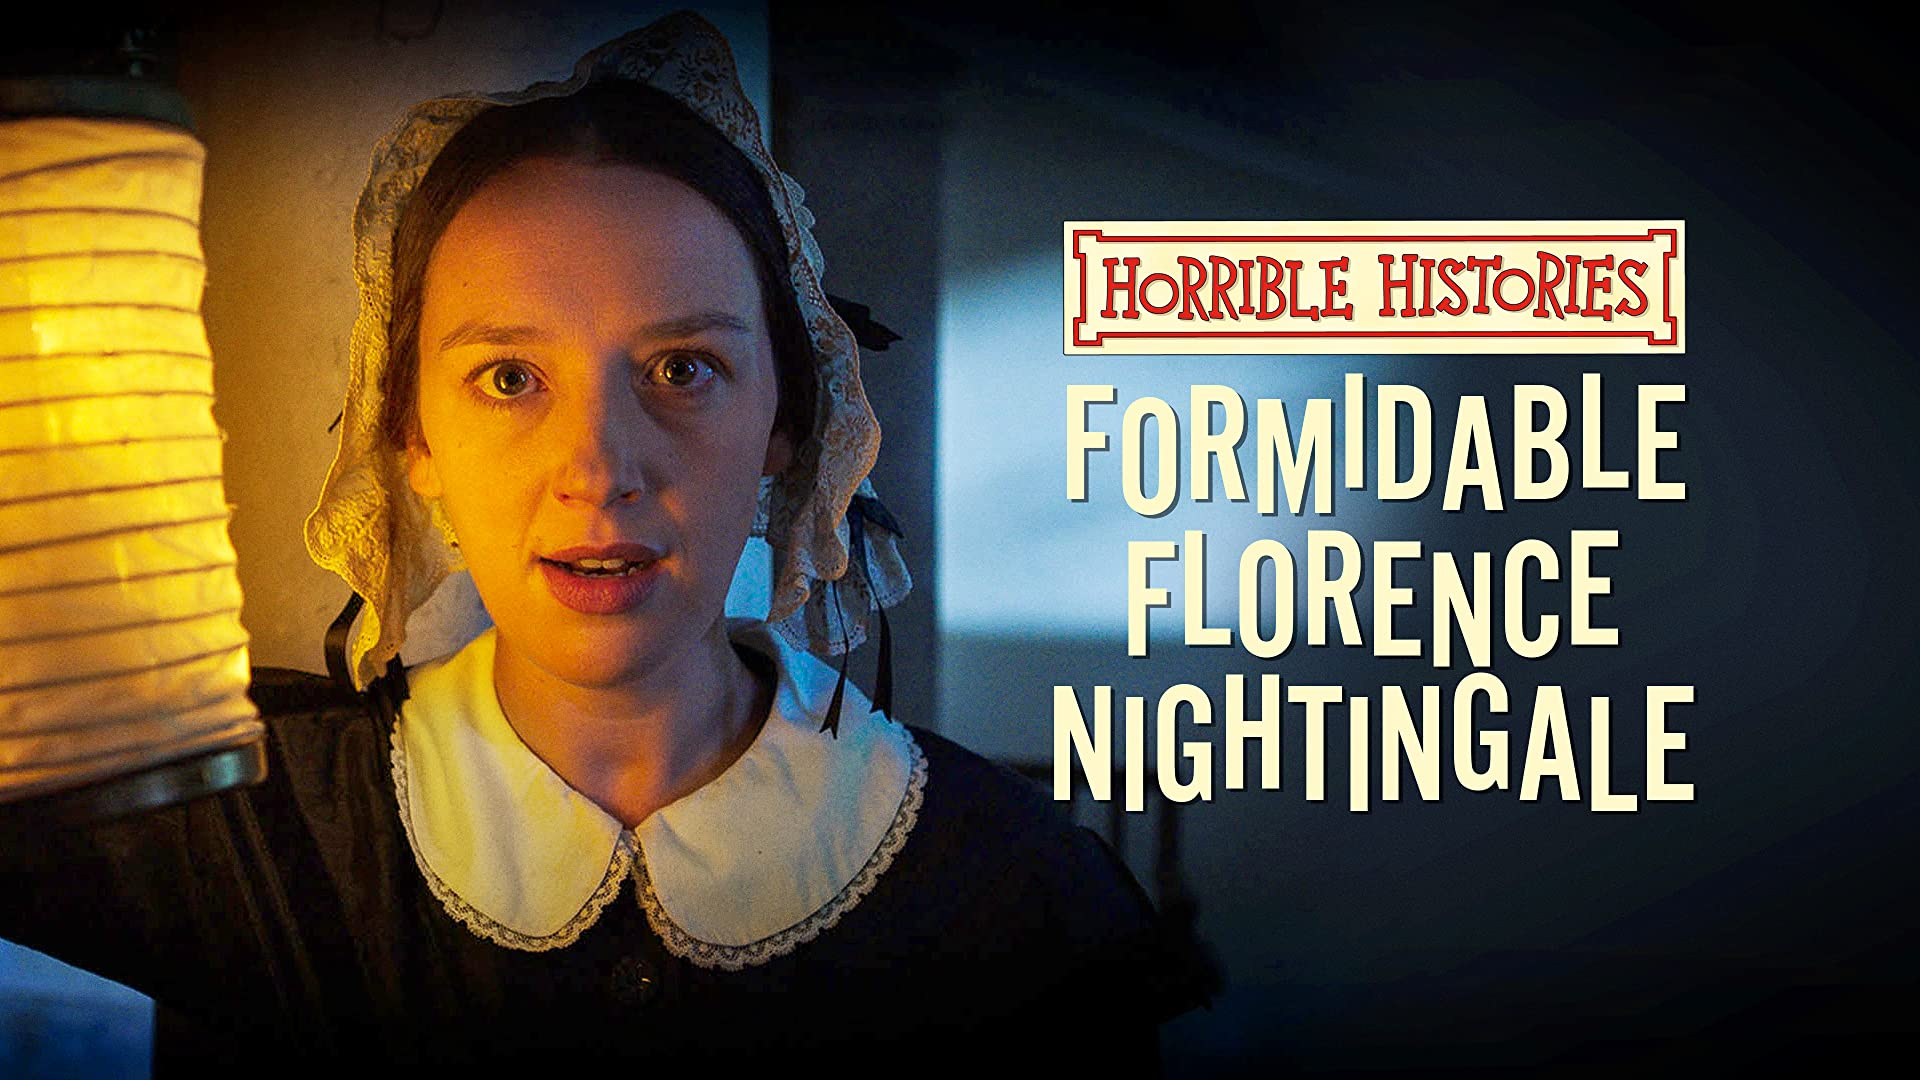 Horrible Histories: Formidable Florence Nightingale